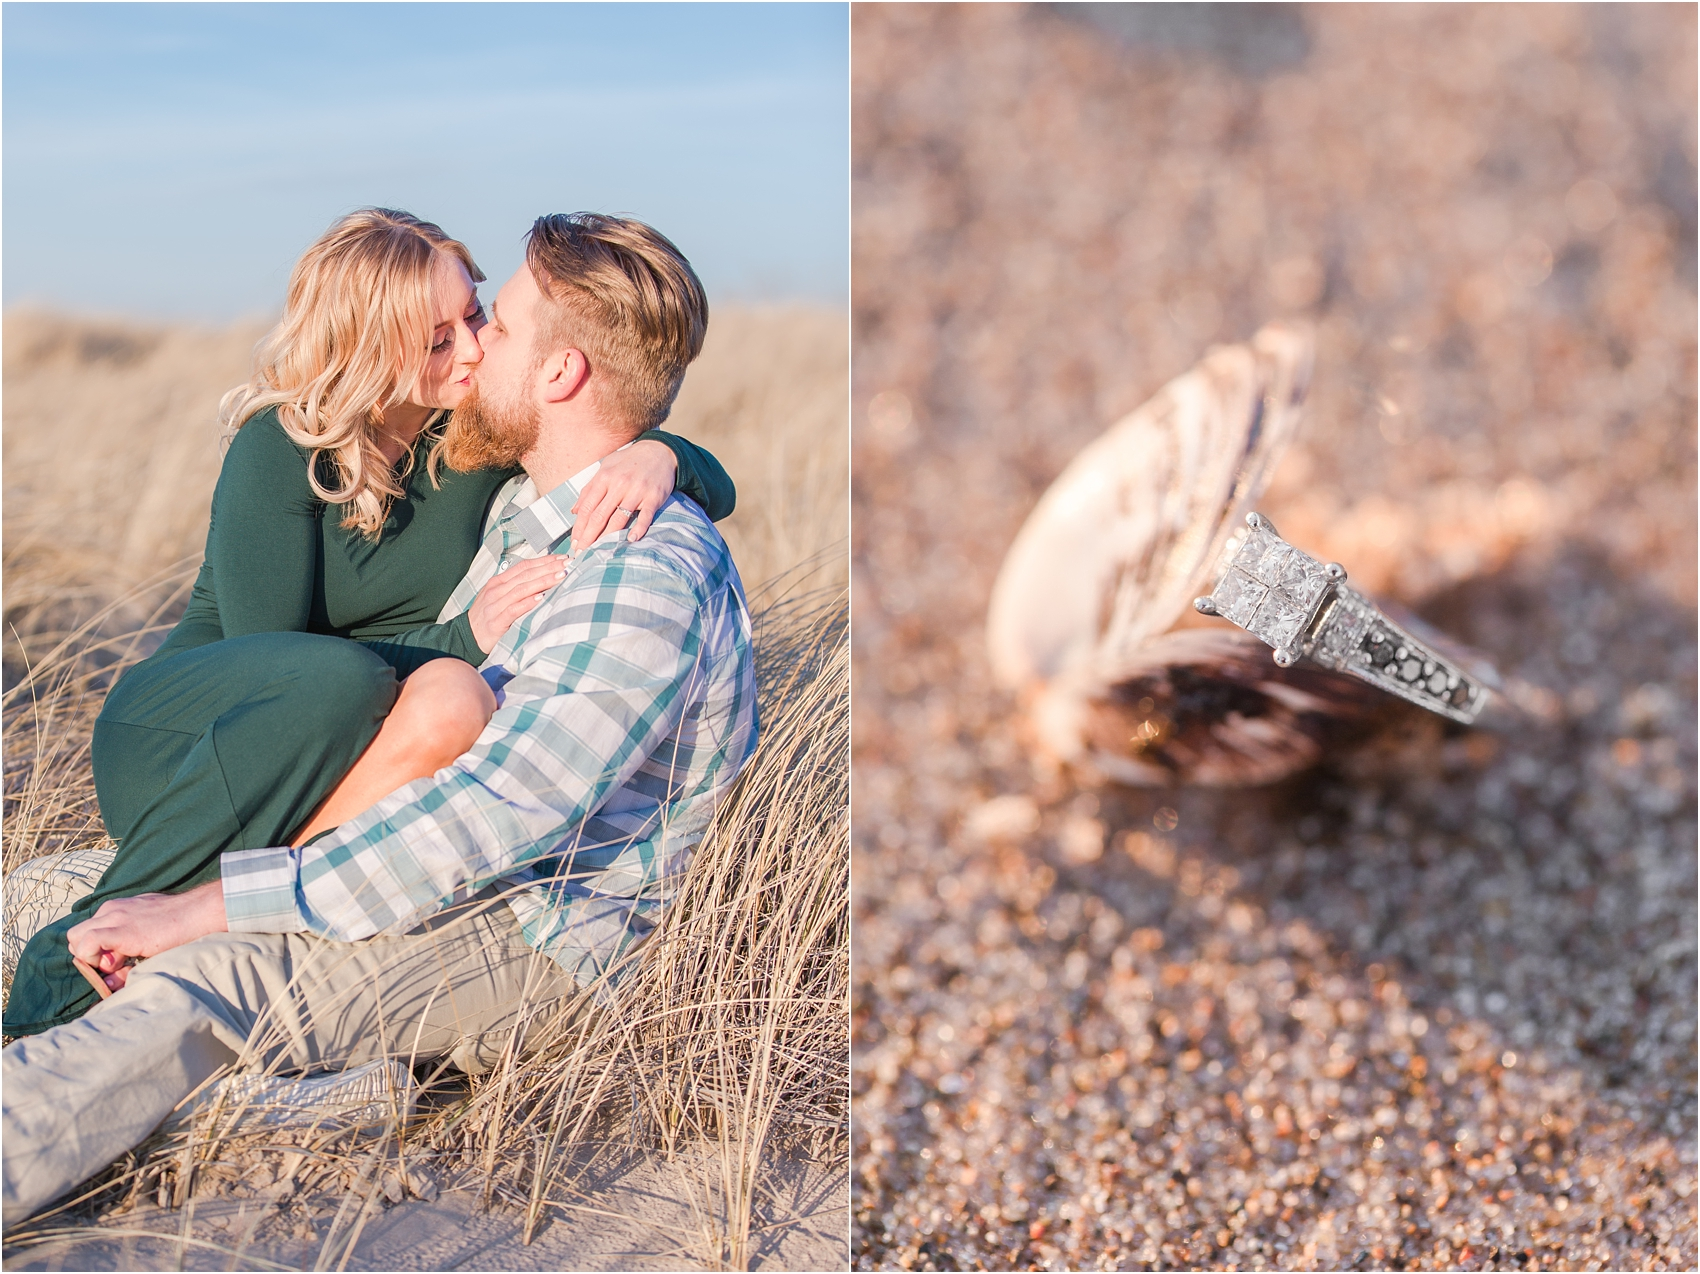 emotional-candid-romantic-engagement-photos-in-detroit-chicago-northern-michigan-by-courtney-carolyn-photography_0006.jpg